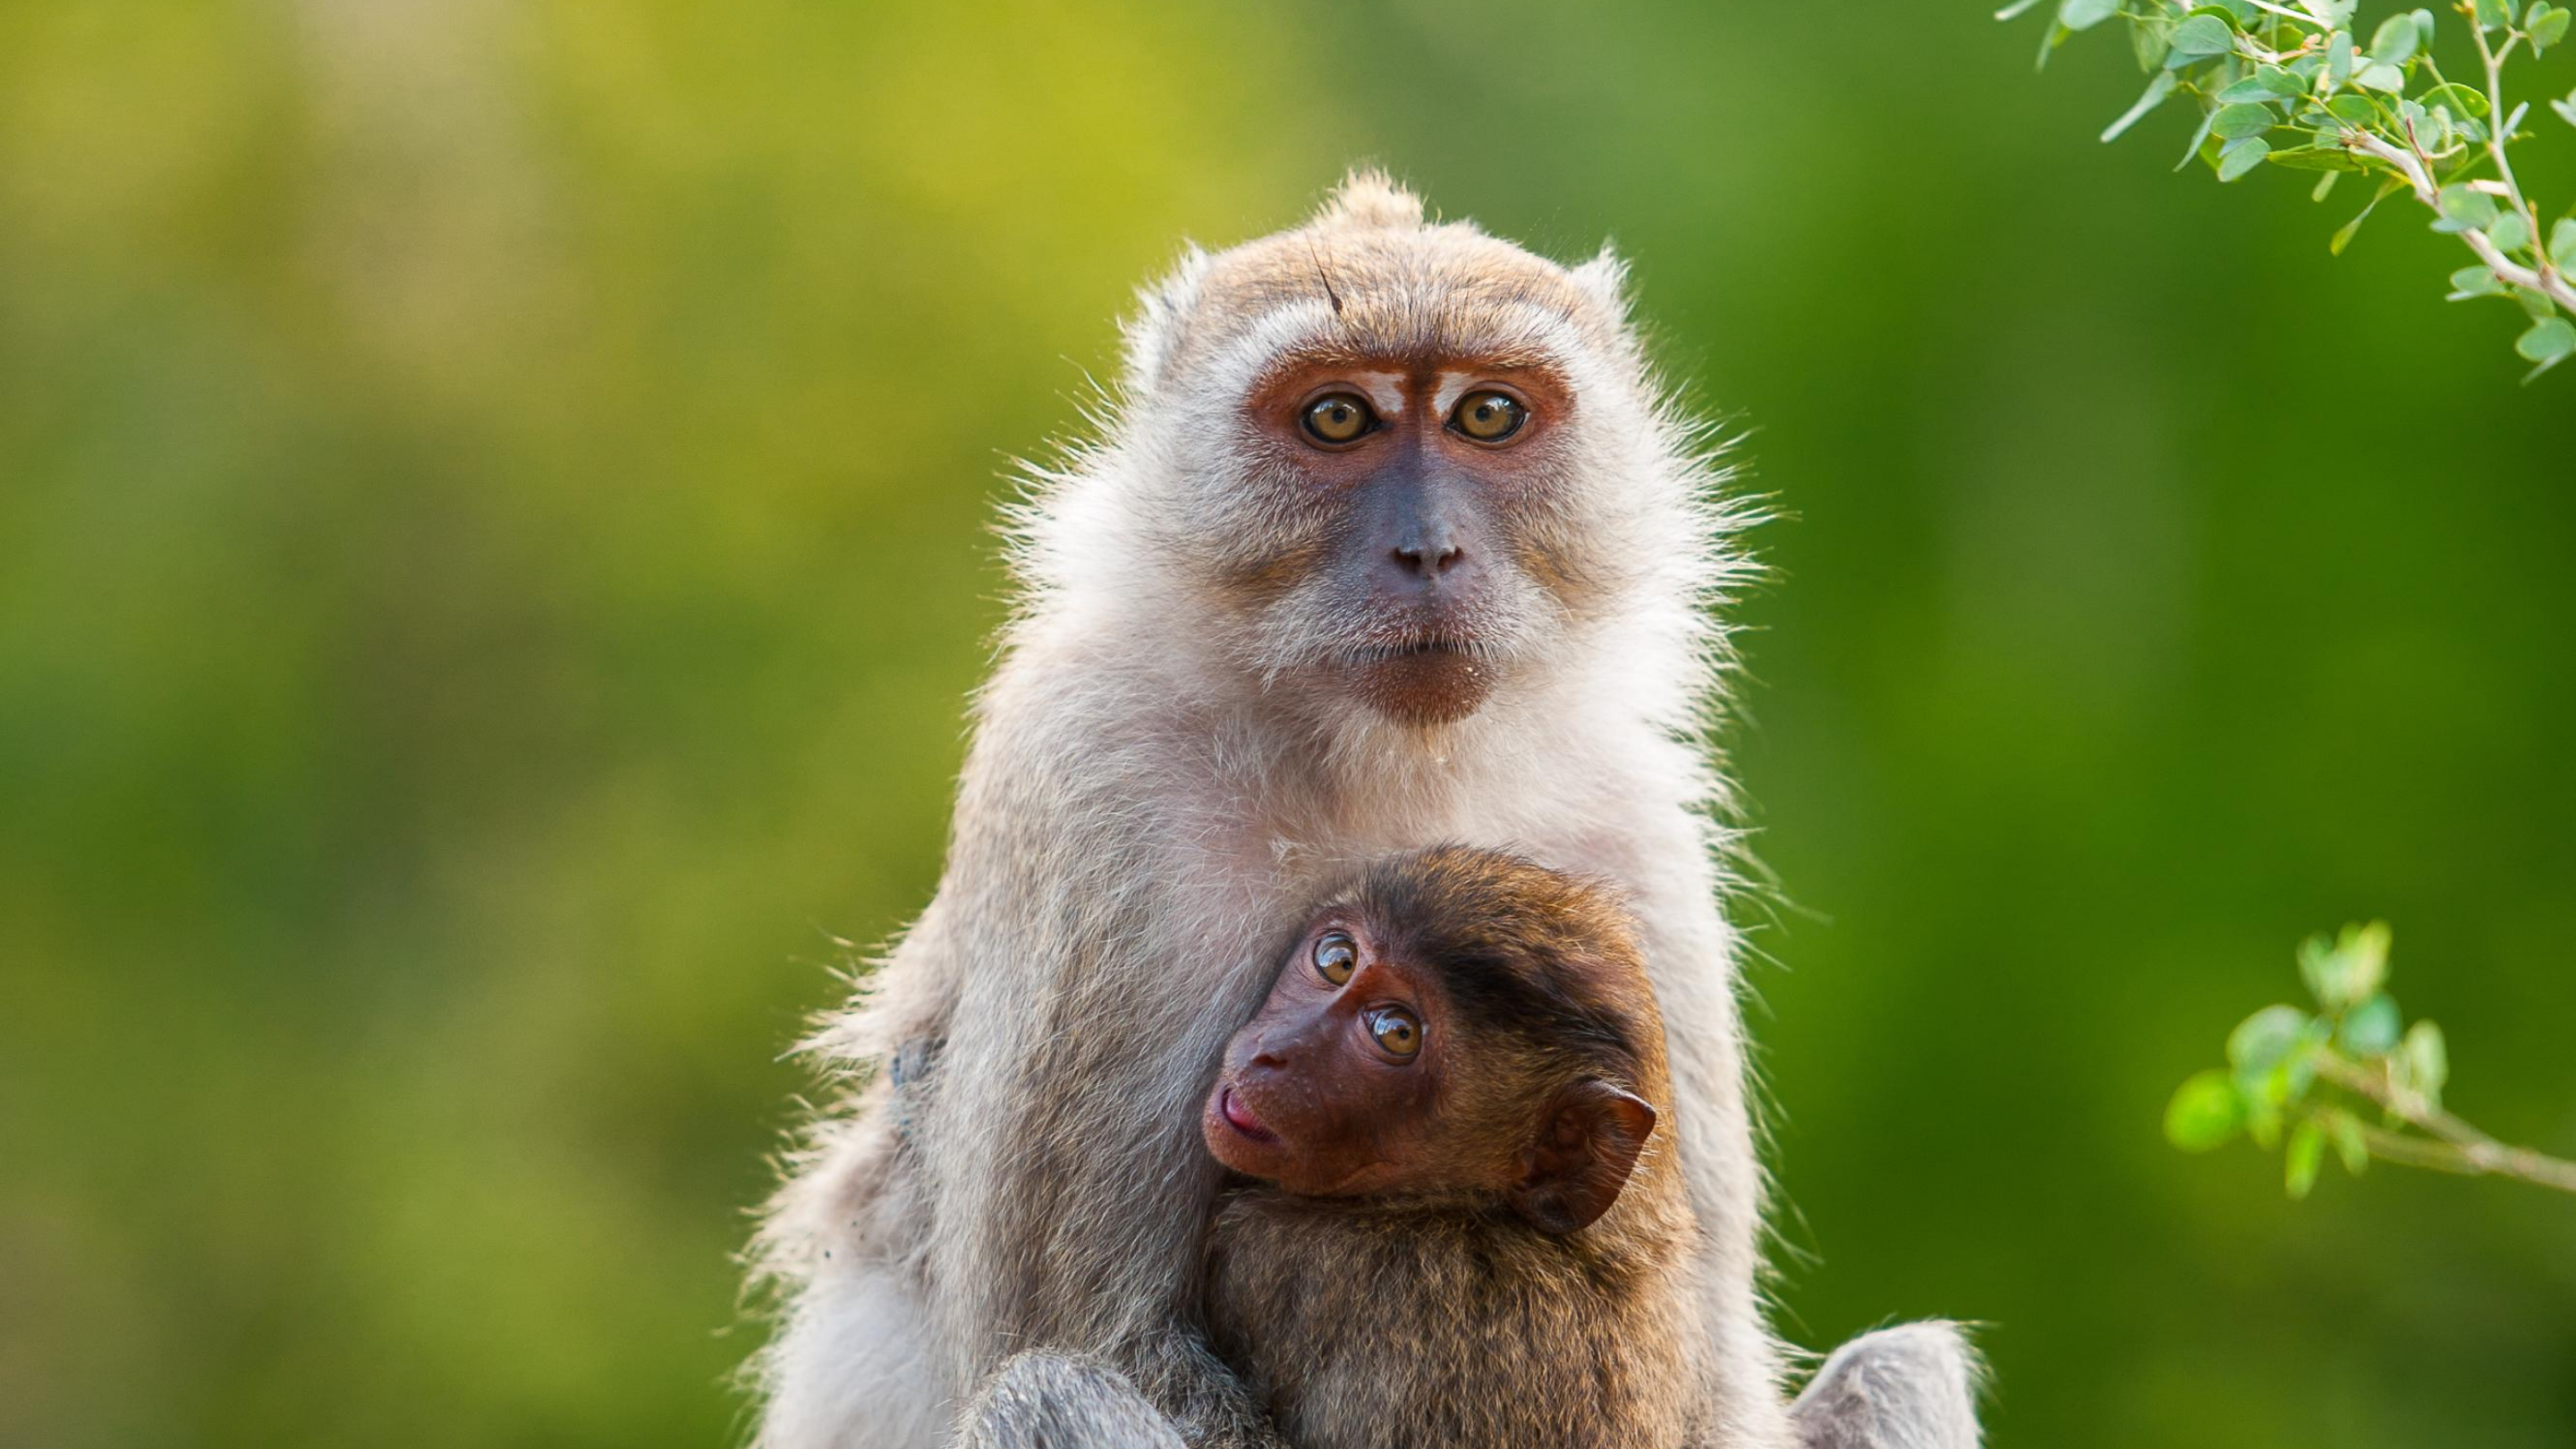 A long-tailed macaque and her offspring sit among lush green trees